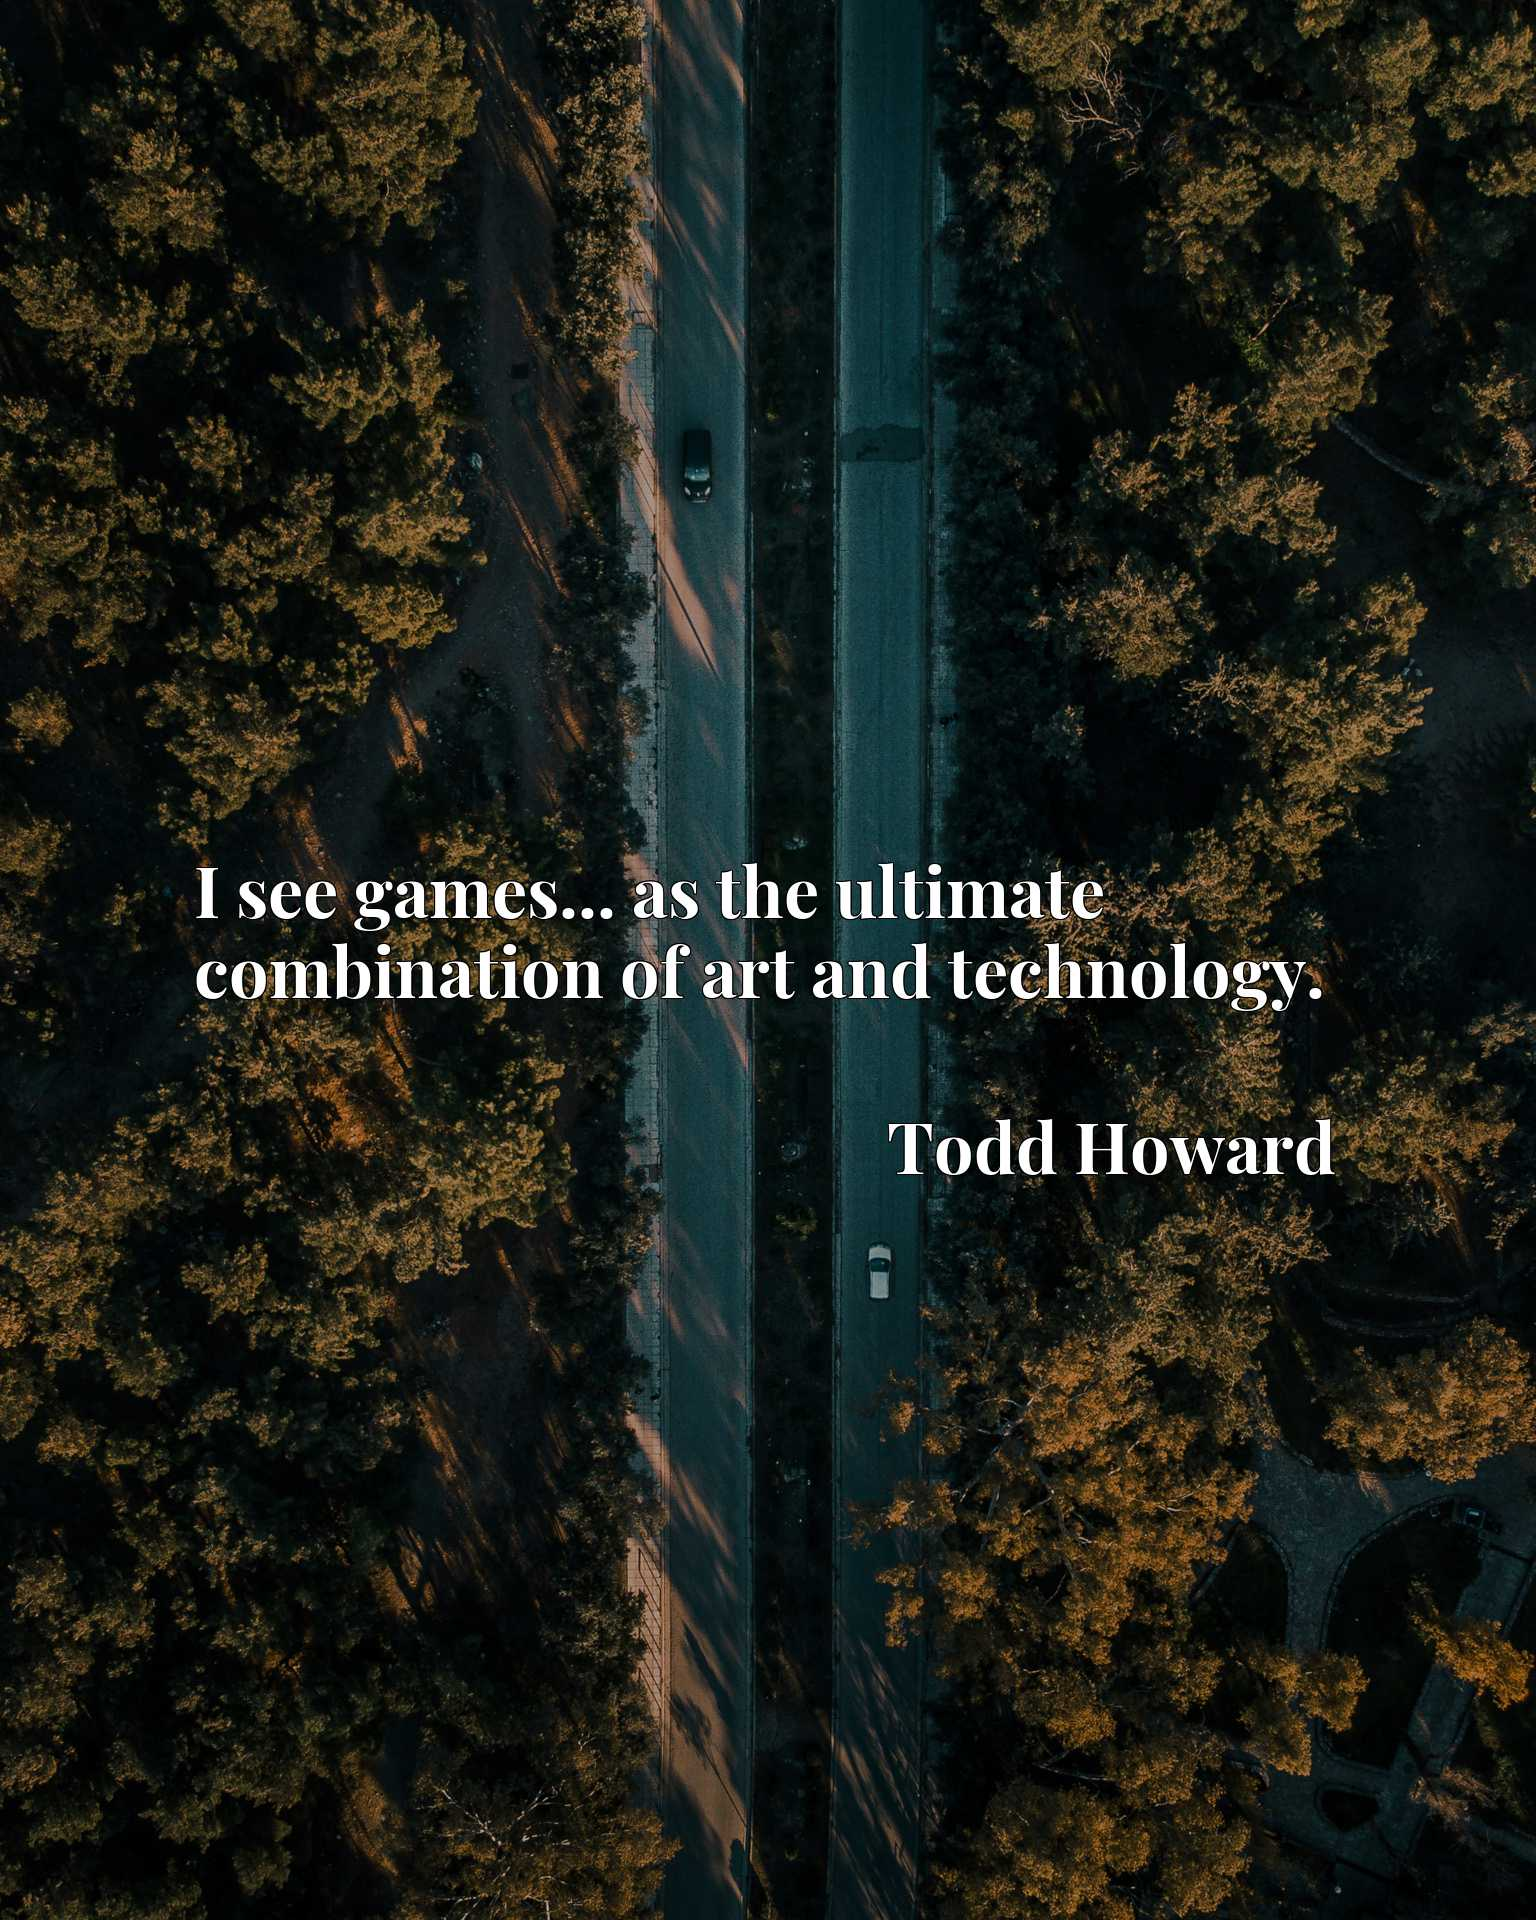 Quote Picture :I see games... as the ultimate combination of art and technology.